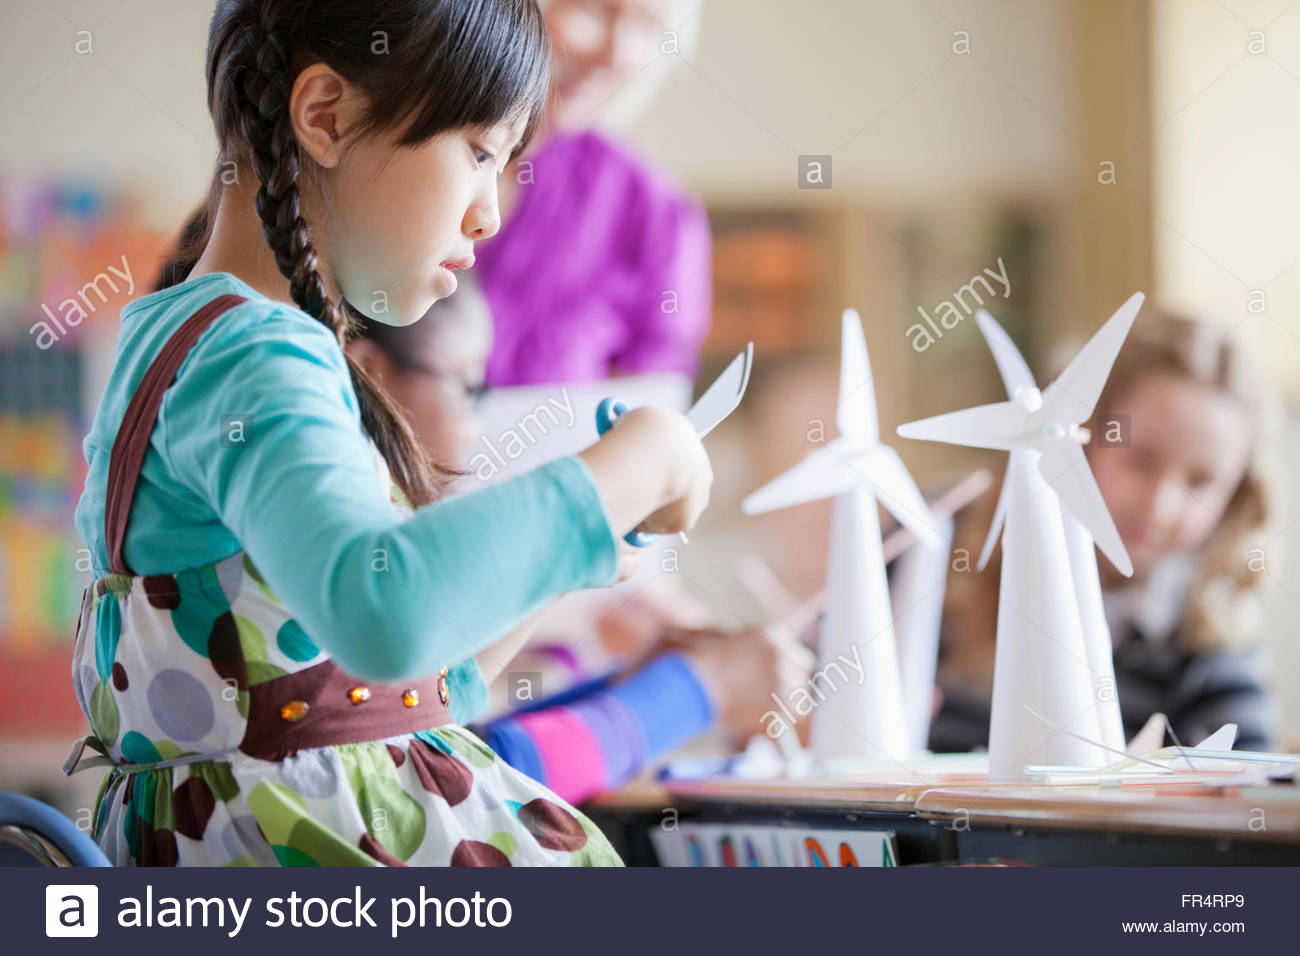 elementary school students building wind turbine models - Stock Image